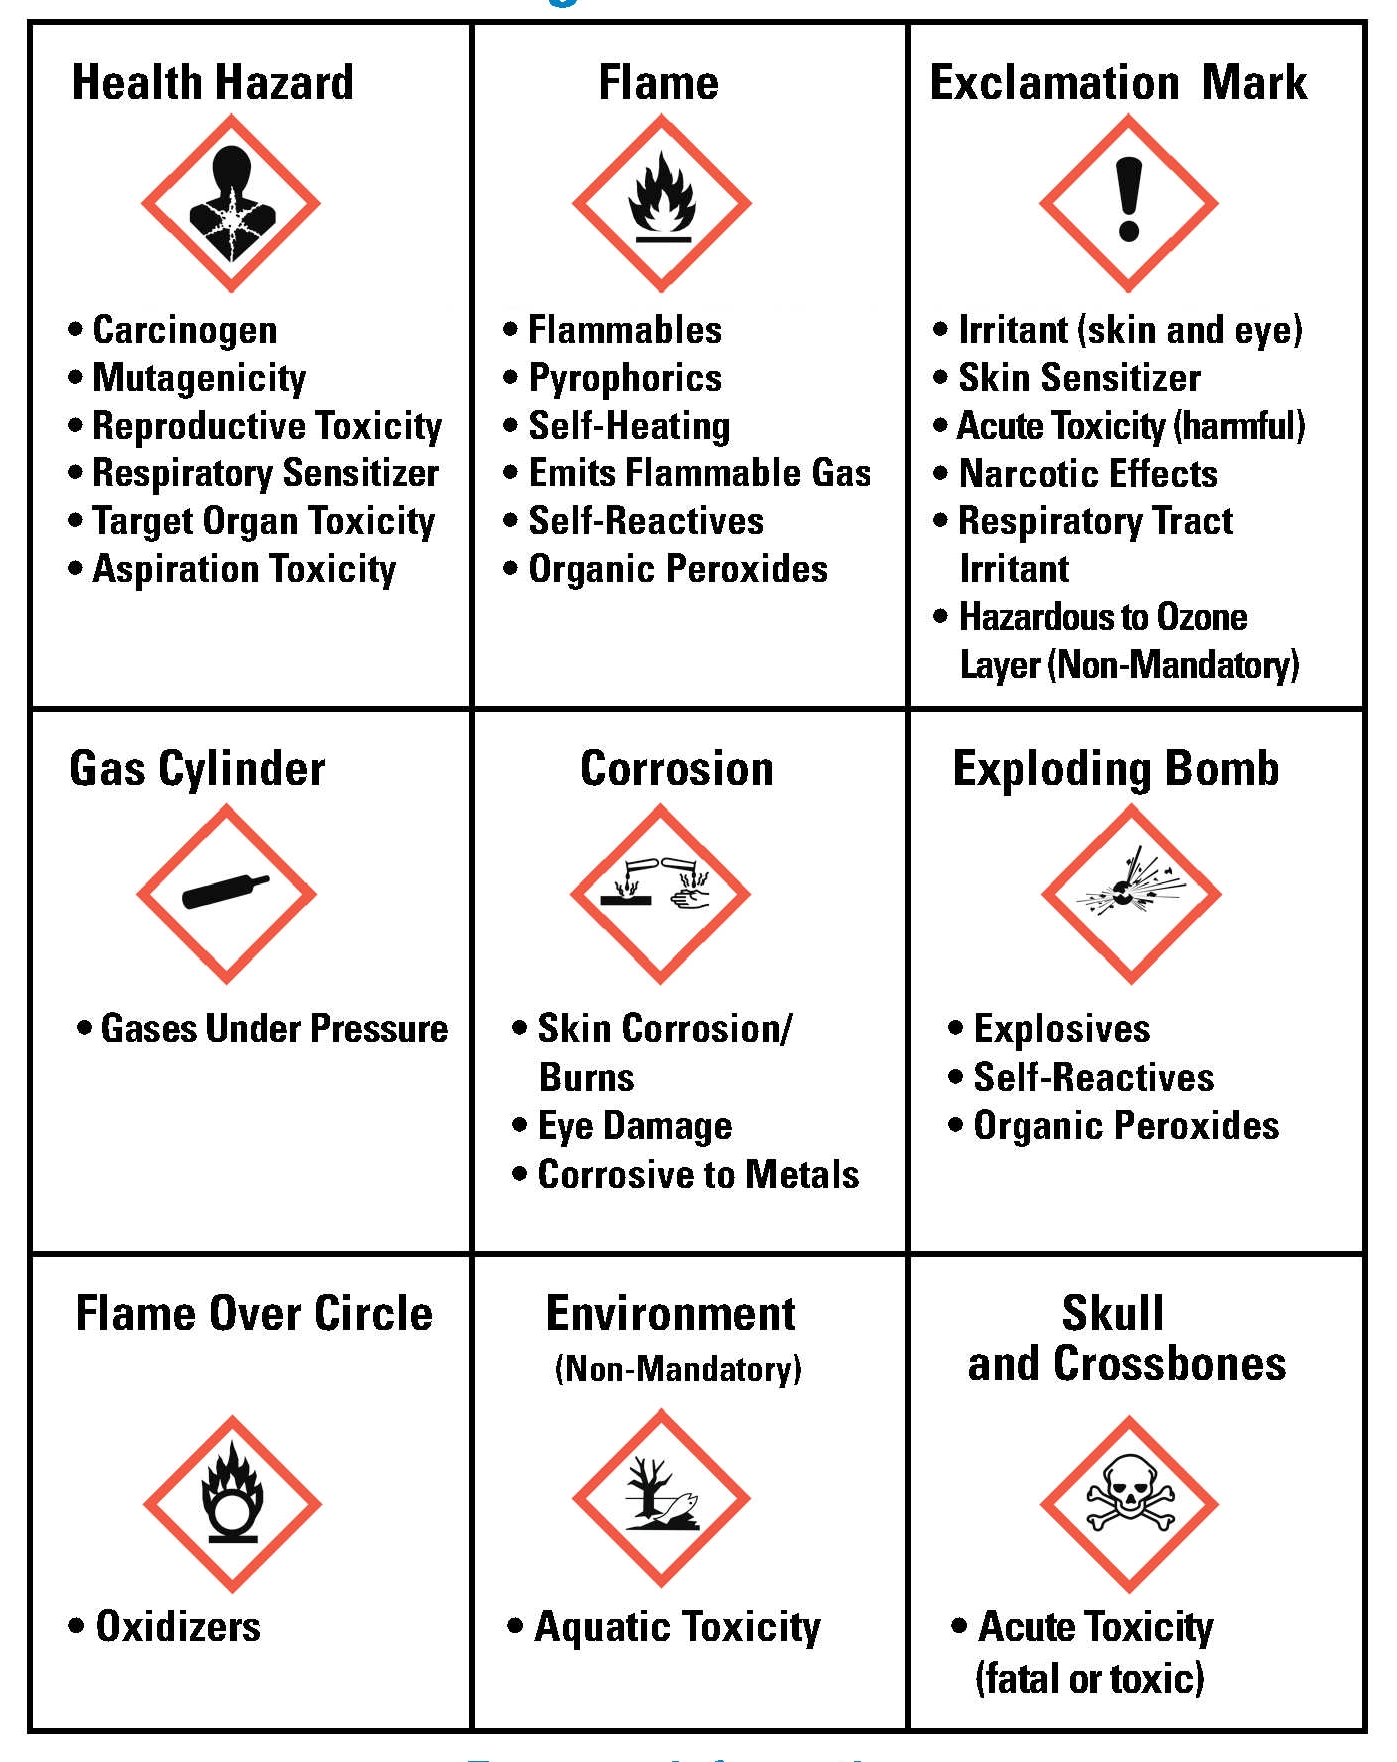 chemical hazard system pictograms hazcomprg safety standard diamond safetymanual communication health ghs harmonized globally ehsrm environmental